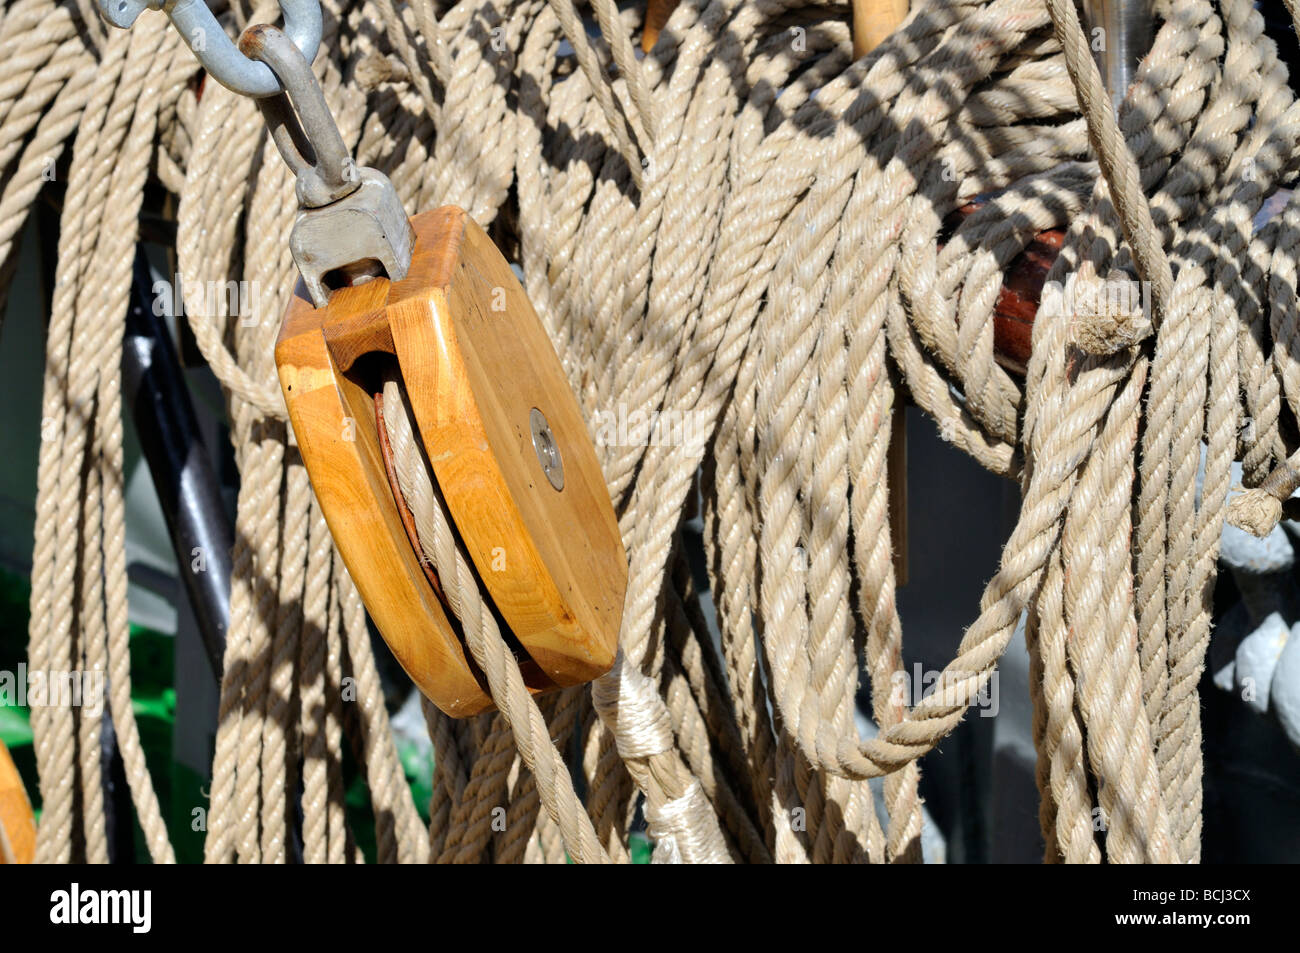 Closeup of single wood block on tall ship surrounded by lines and rigging - Stock Image